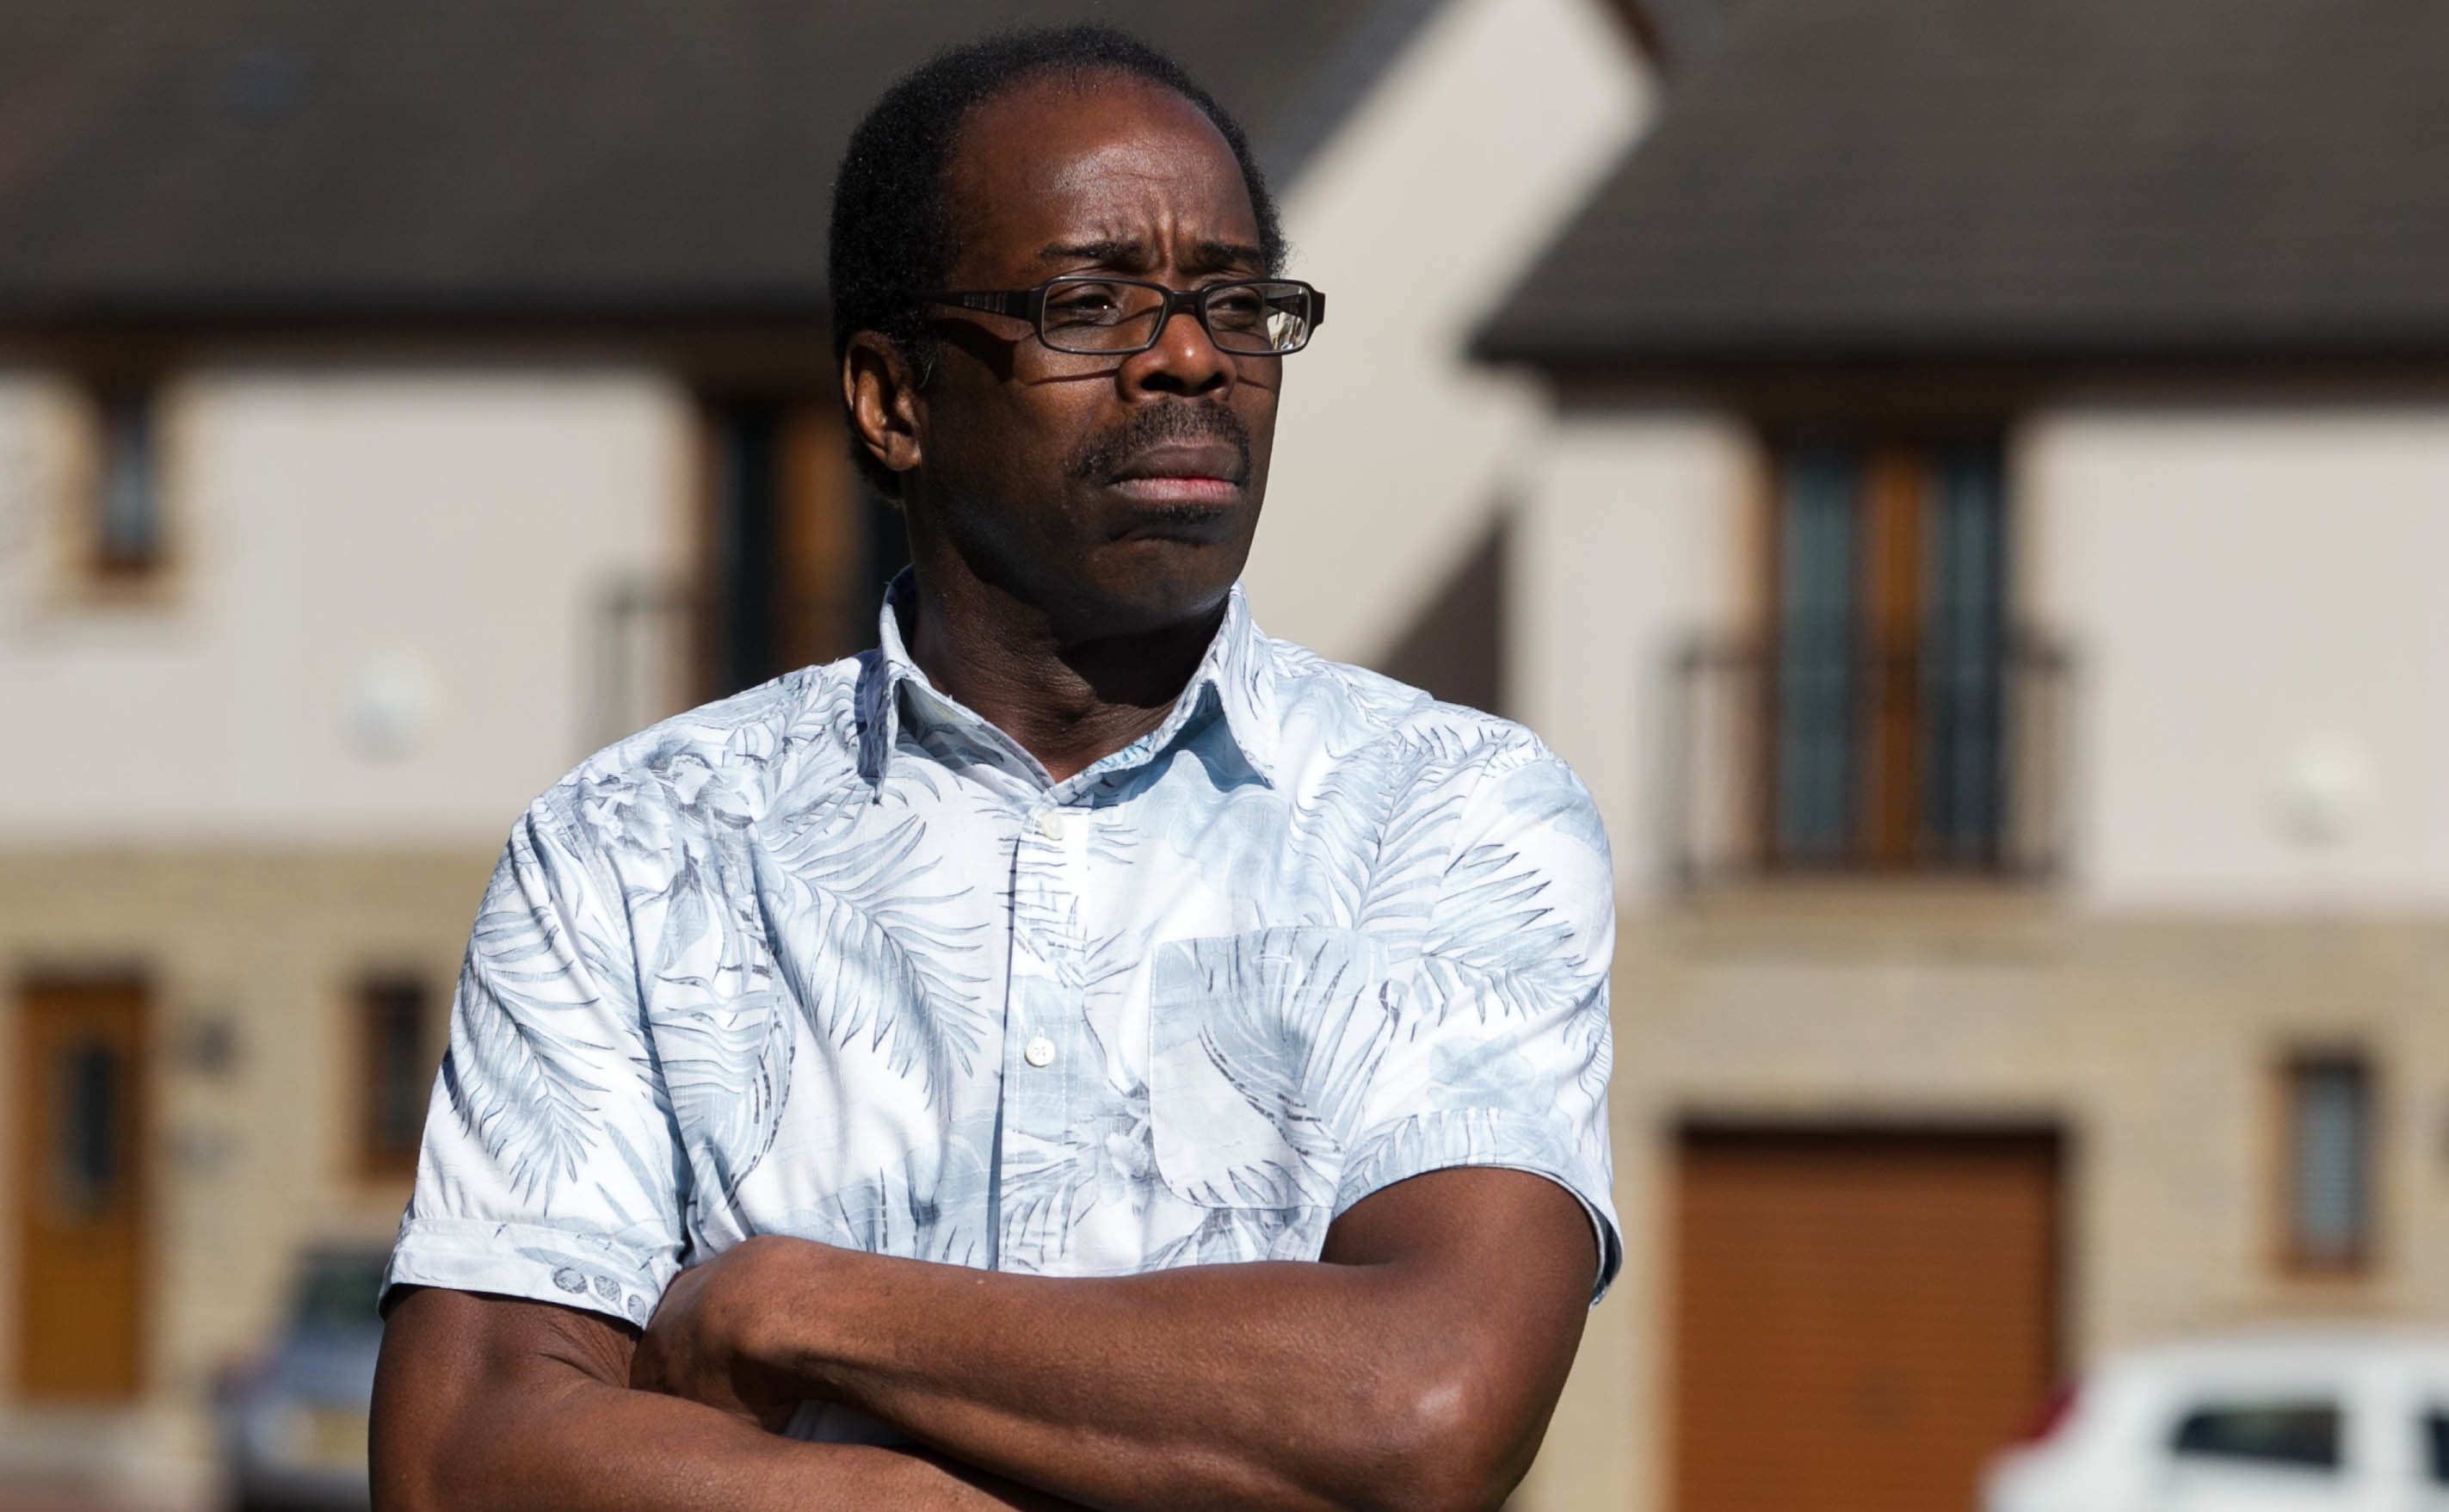 Paul Cudjoe was part of the Windrush generation who settled in the UK (Chris Austin / DC Thomson)